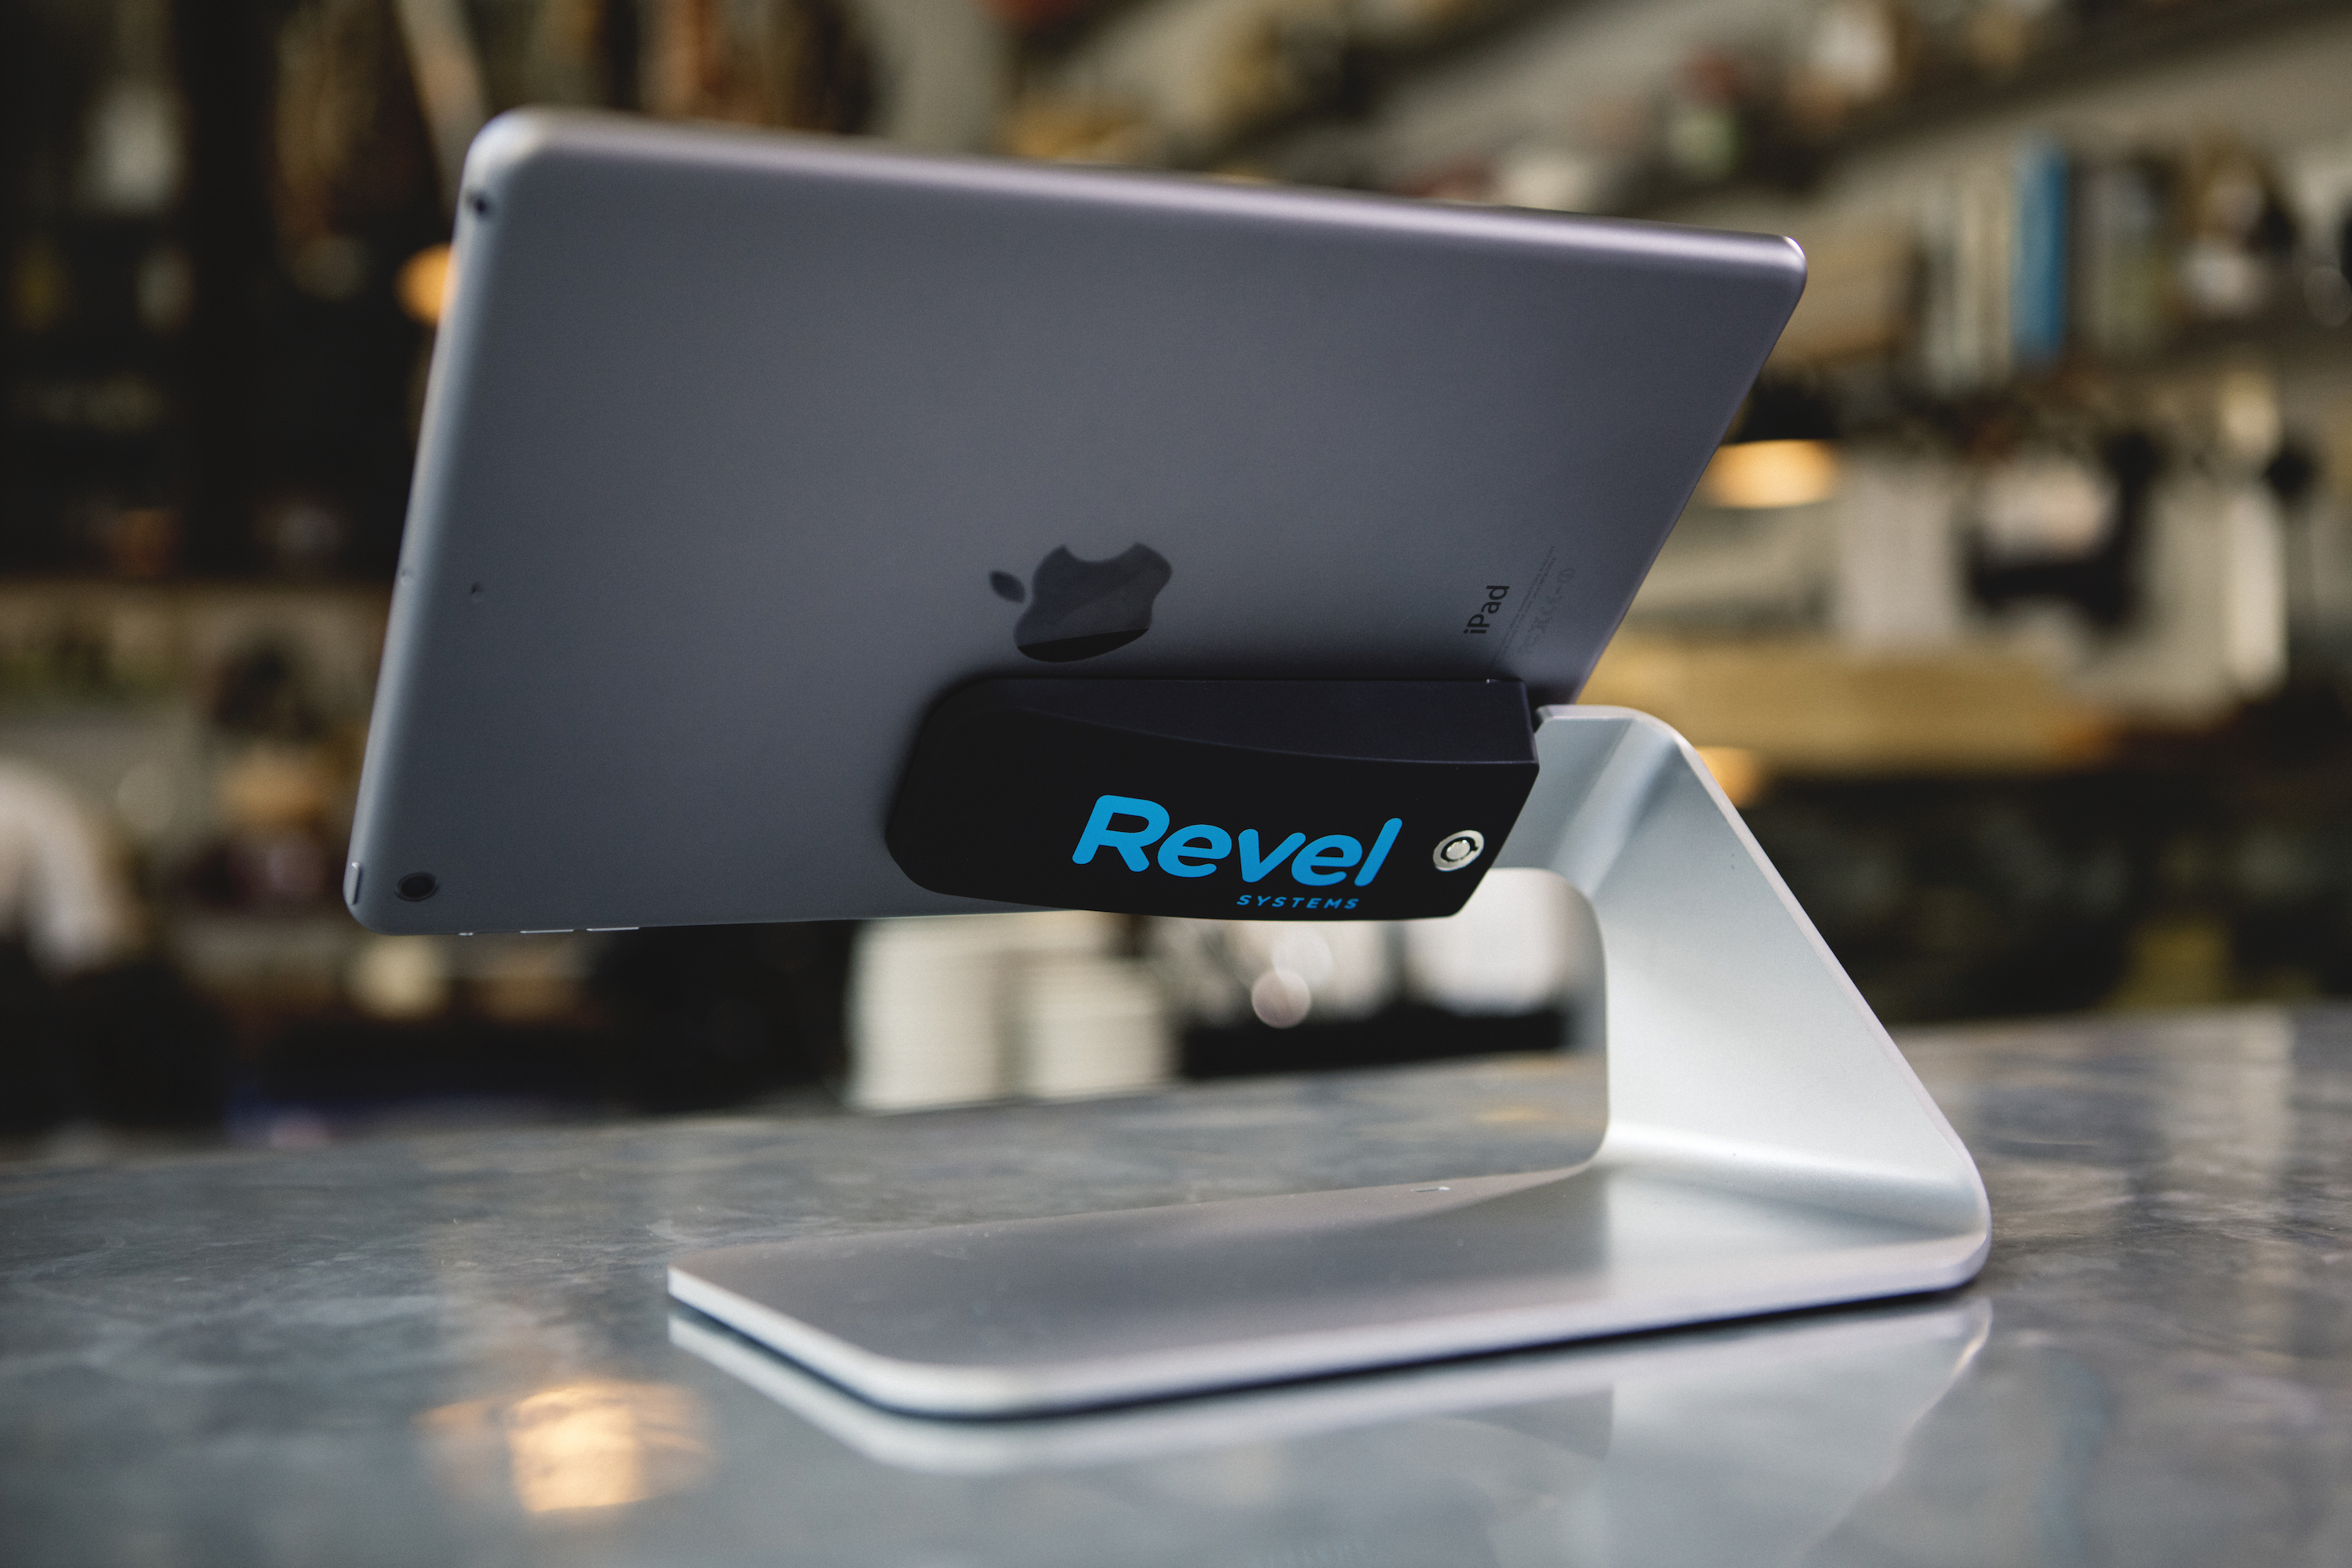 Revel Enters 2020 with Strong Market Position